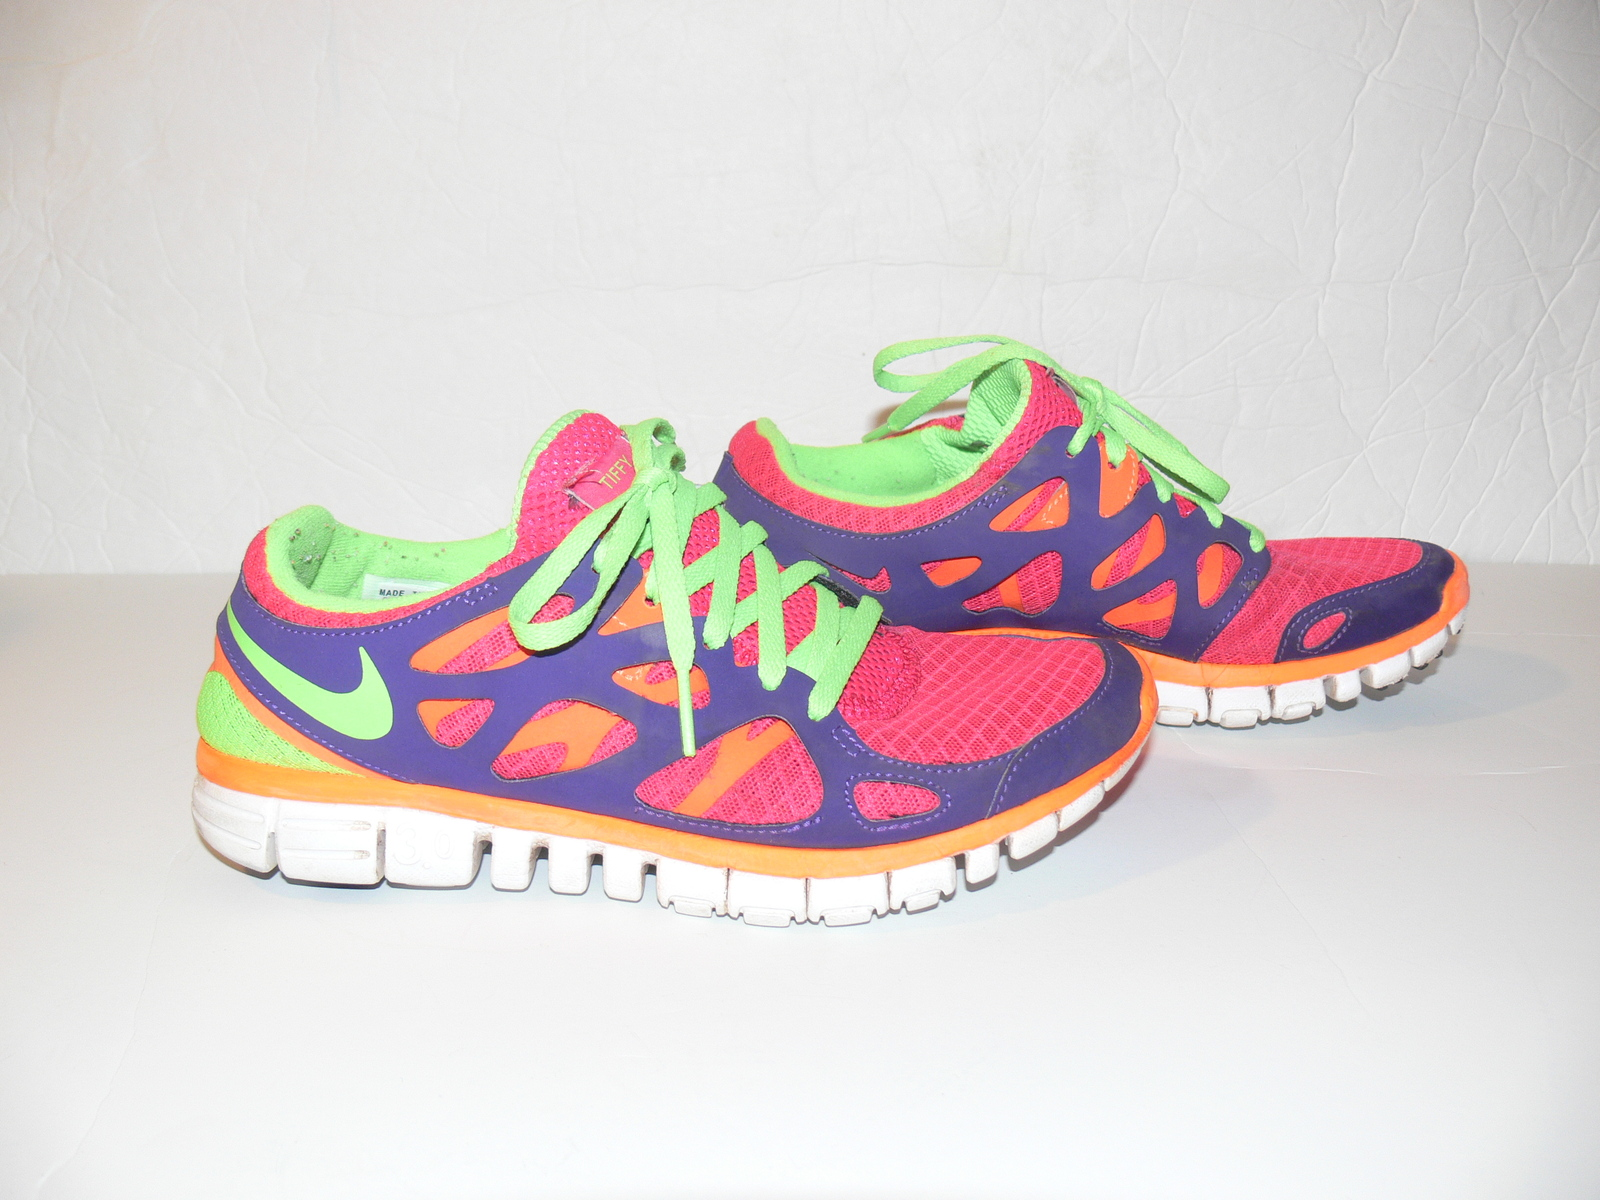 newest 7dc09 71bd8 NIKE ID FREE RUN 2 3.0 Shoes Pink Green Purple WOMENS Athlietic Size ...